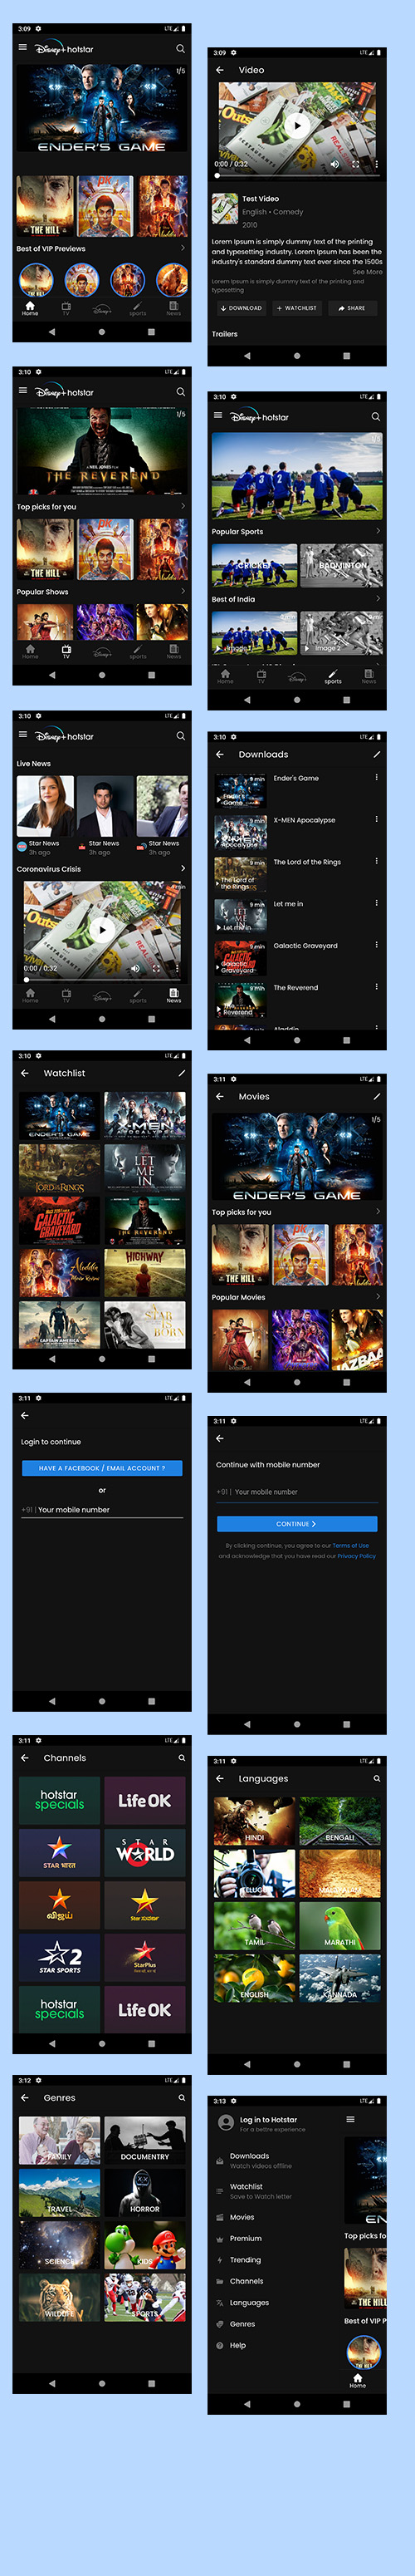 ionic 5 template bundle  / ionic 5 themes bundles / ionic 5 templates with 10+ apps - 6